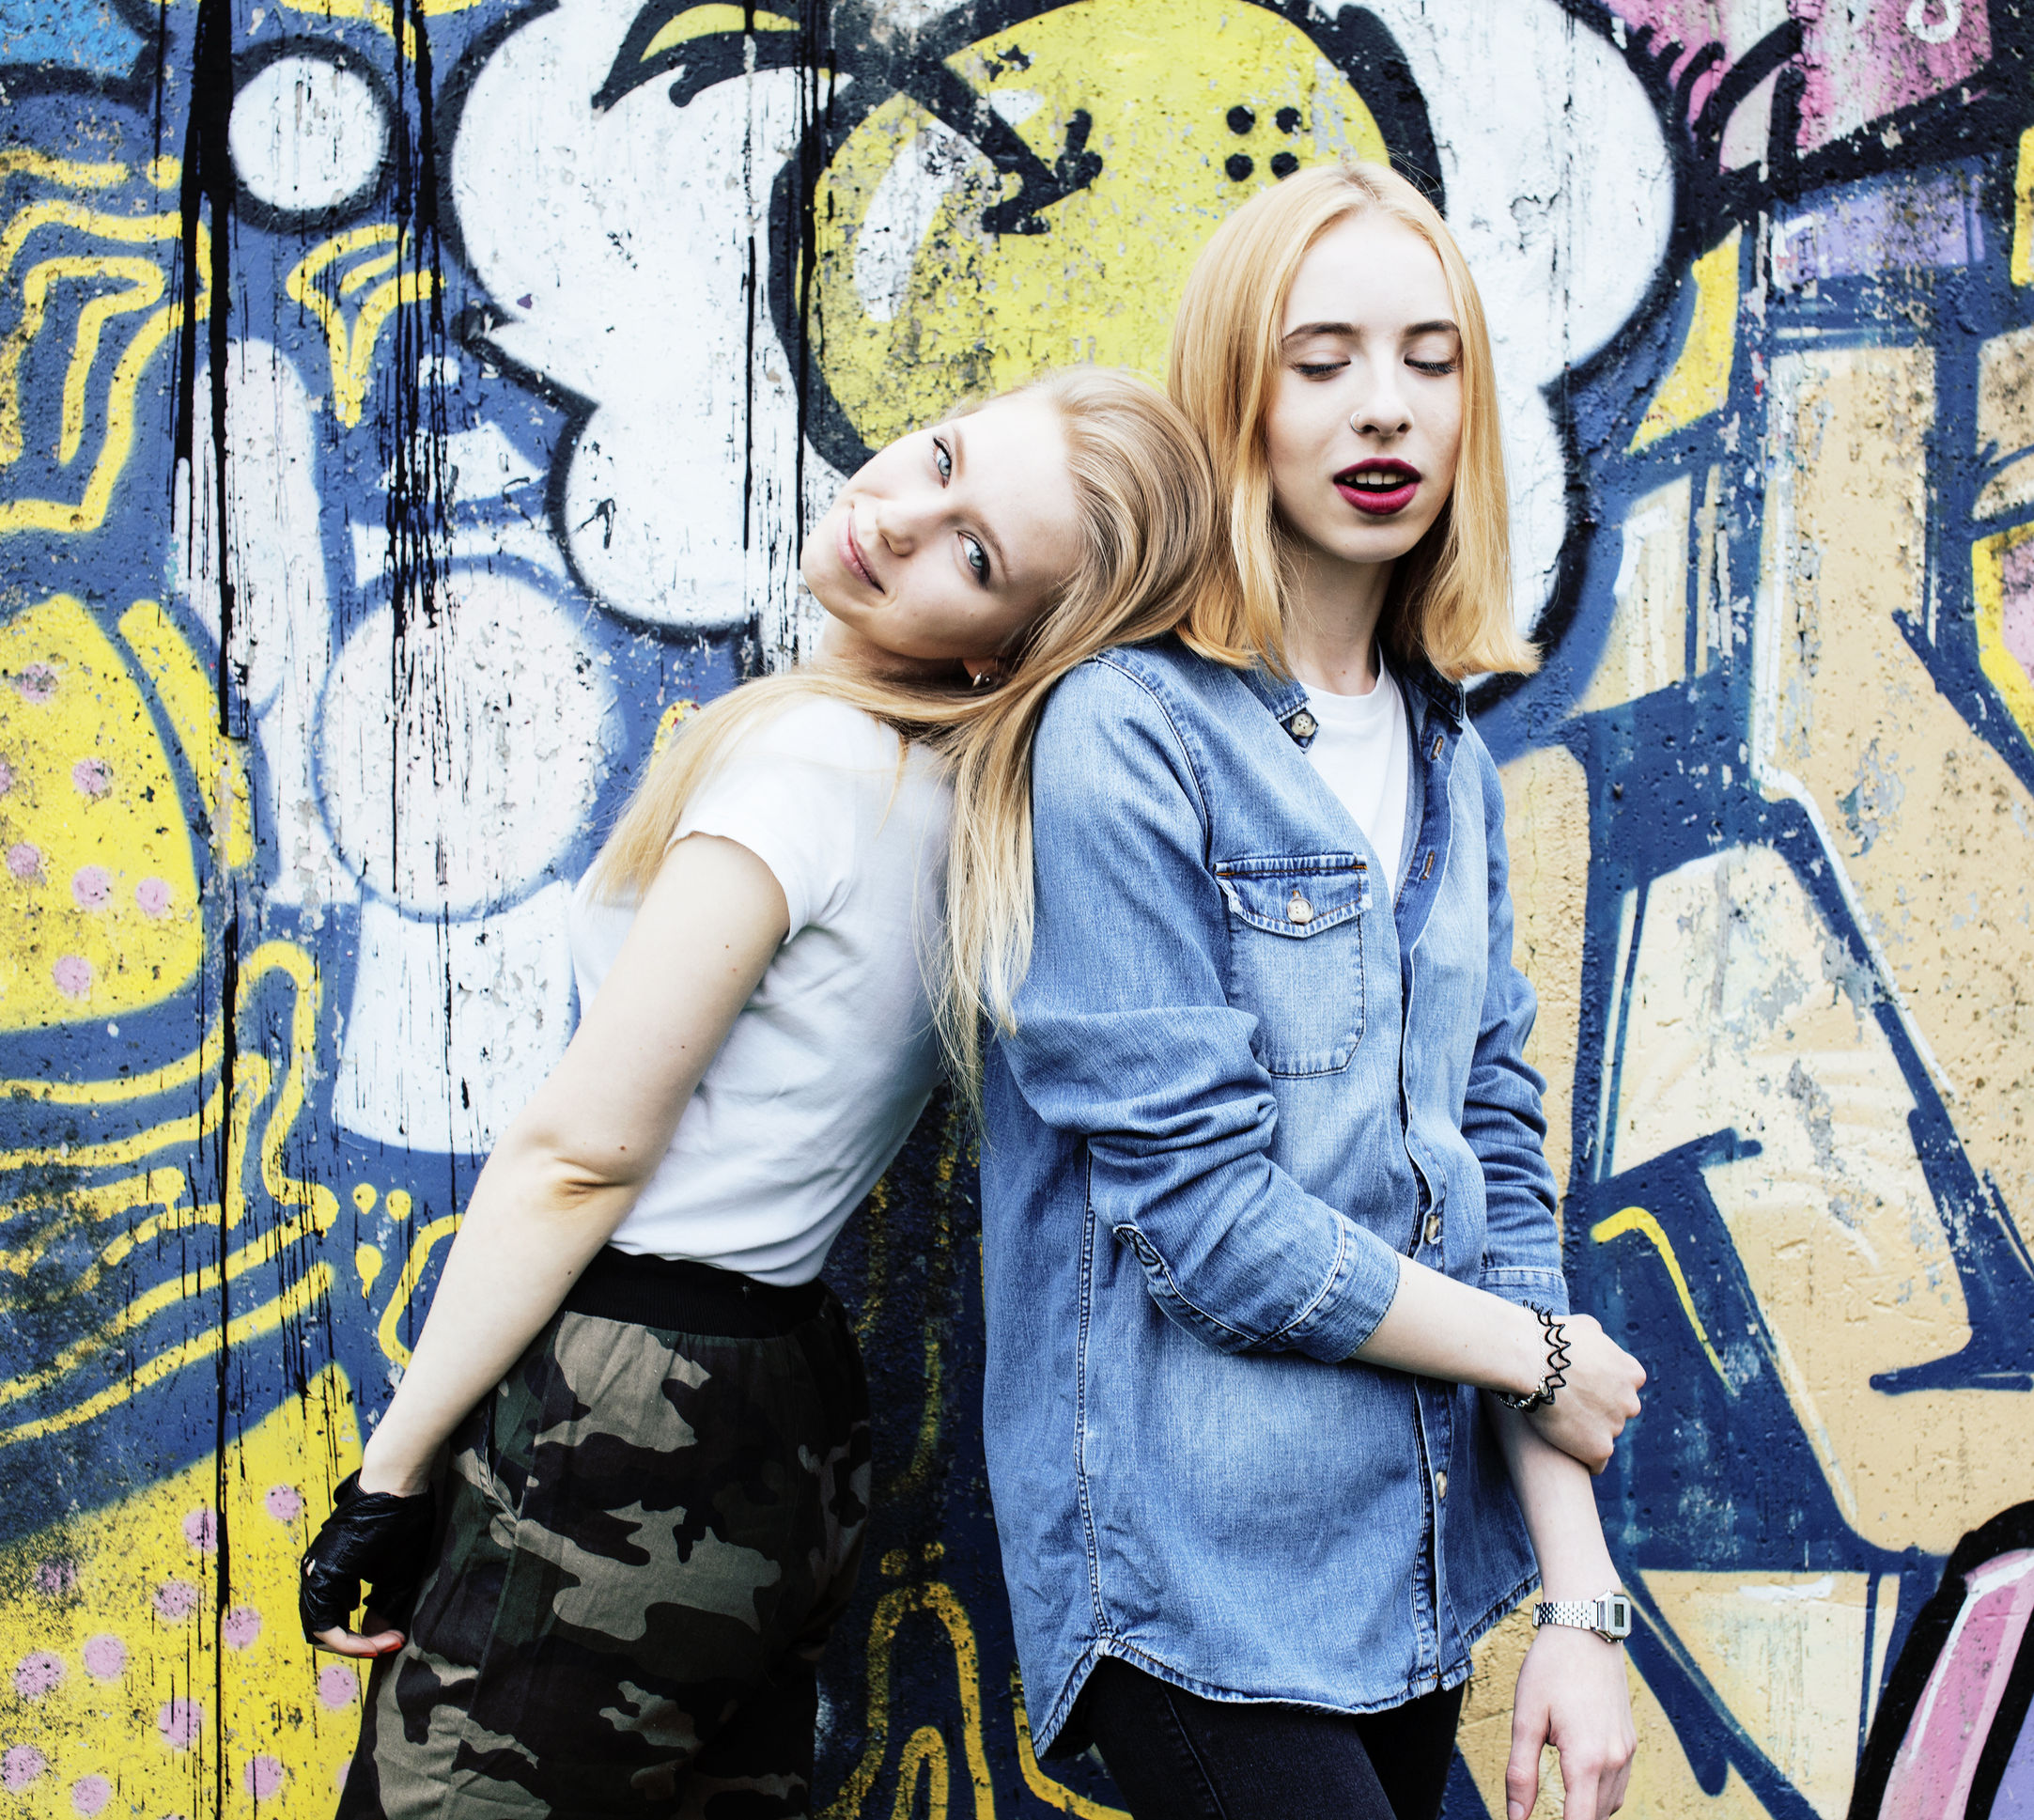 65386366 - two blonde real teenage girl hanging out at summer together best friends, lifestyle people concept close up